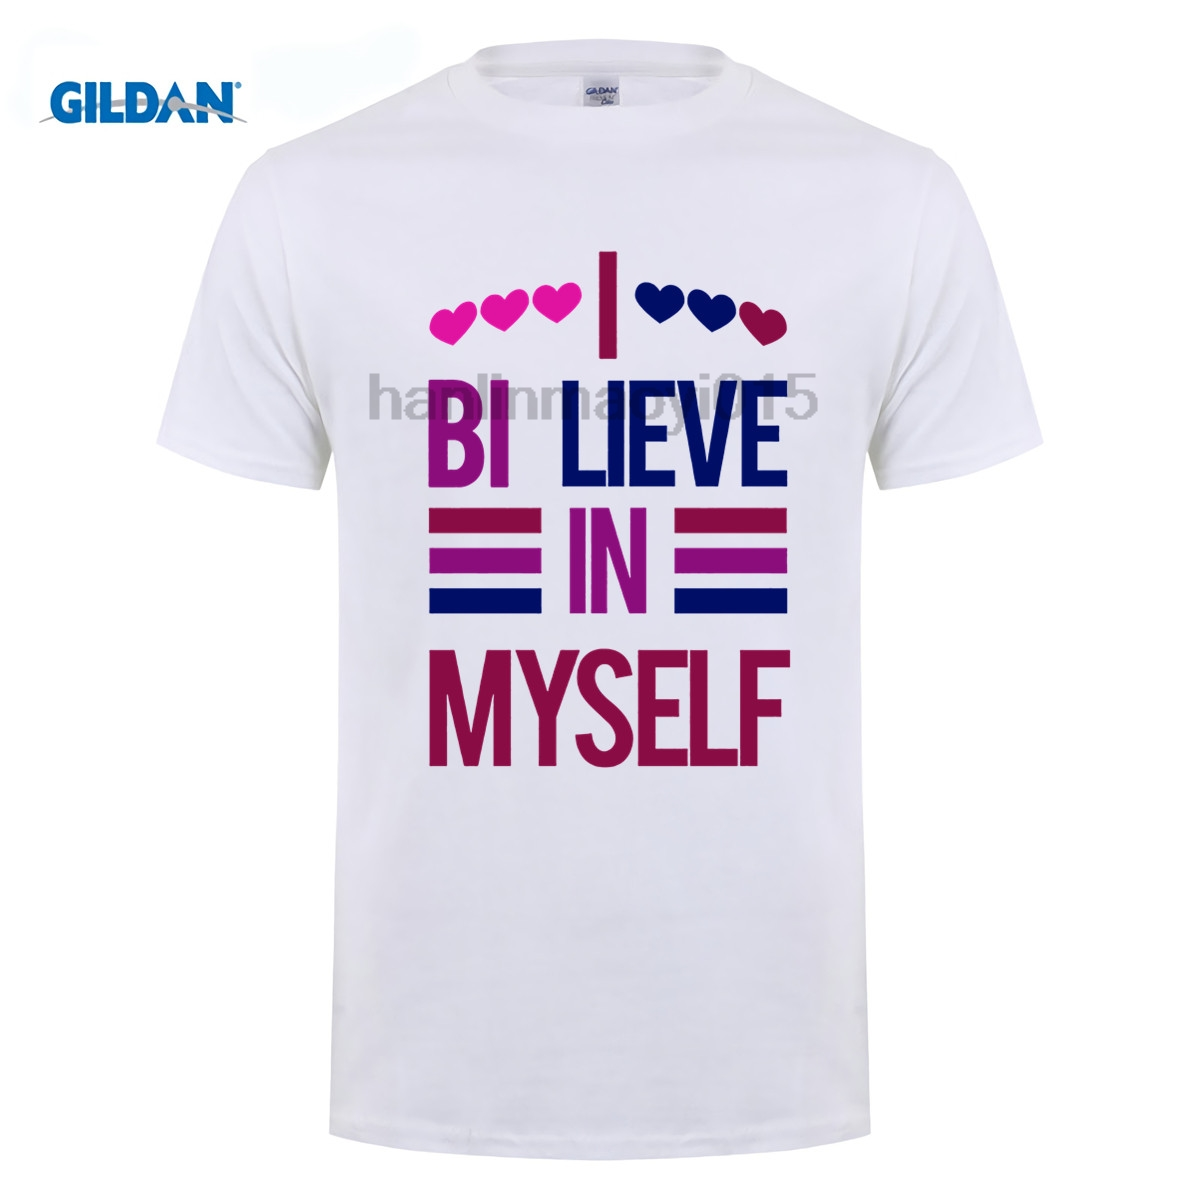 100% Cotton O-neck printed T-<font><b>shirt</b></font> <font><b>Bisexual</b></font> <font><b>Pride</b></font> <font><b>Shirt</b></font> I Bi-Lieve in Myself T-<font><b>Shirt</b></font> image